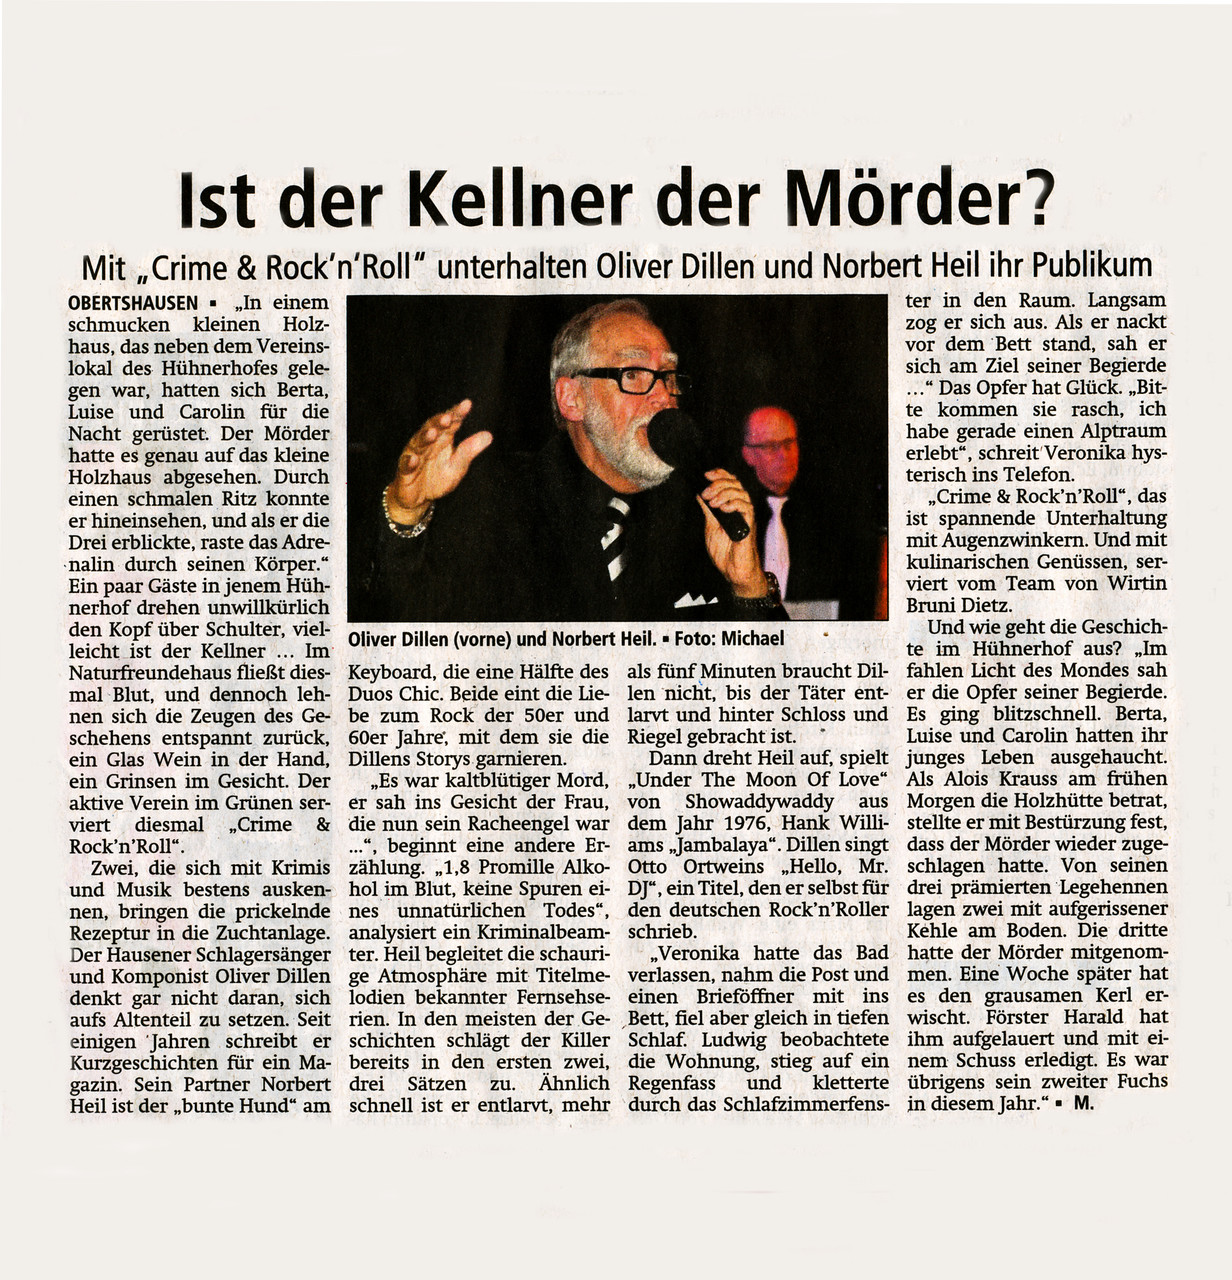 Offenbach Post, 25. April 2015